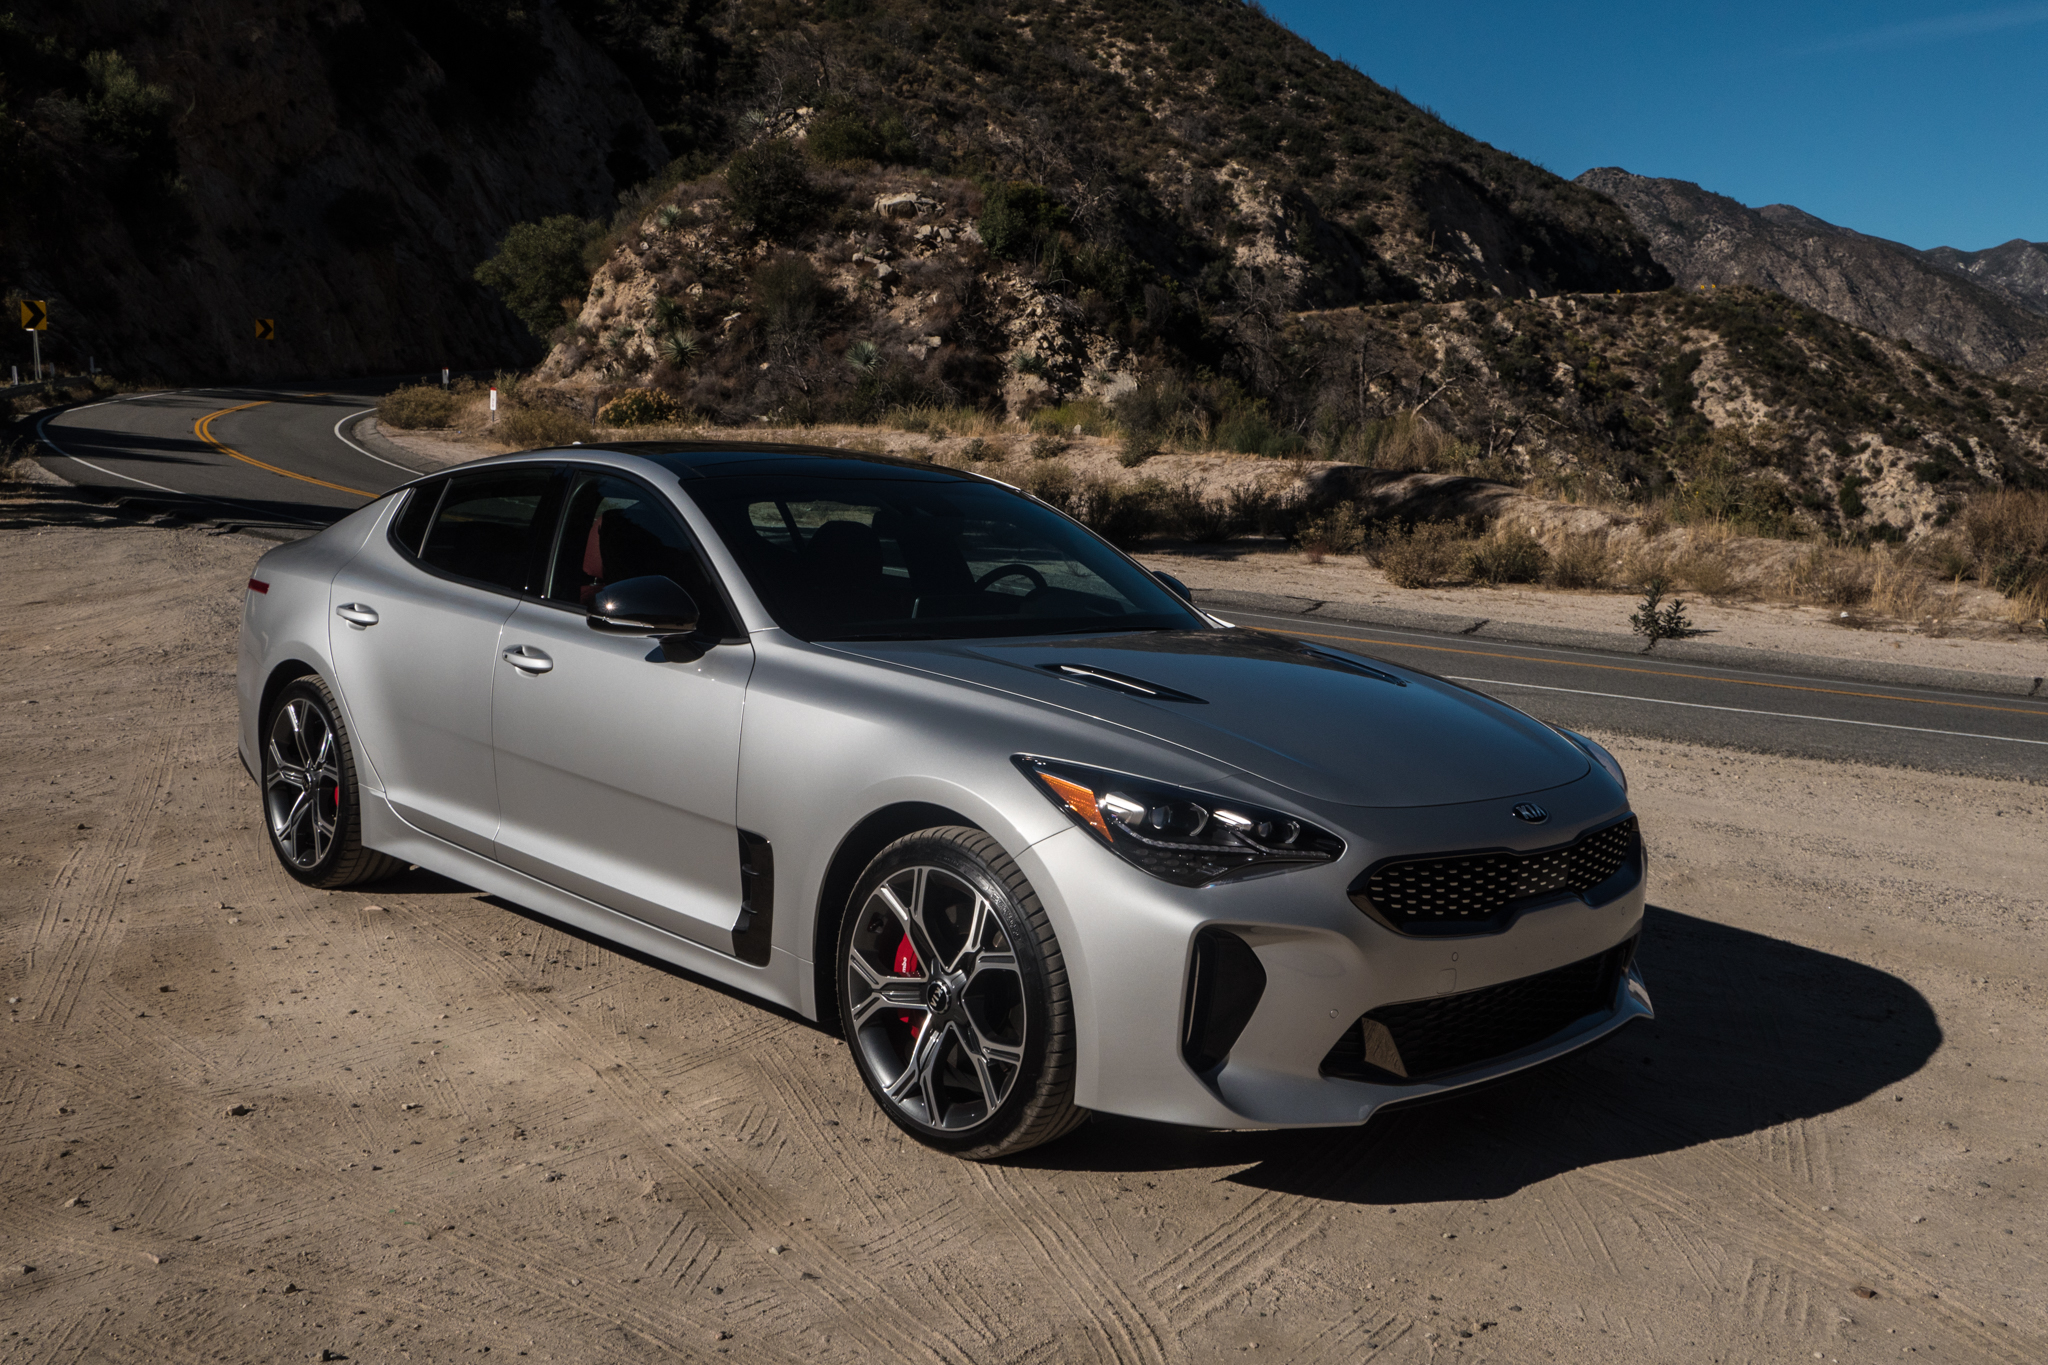 Delightful Enlarge / The 2018 Kia Stinger GT.